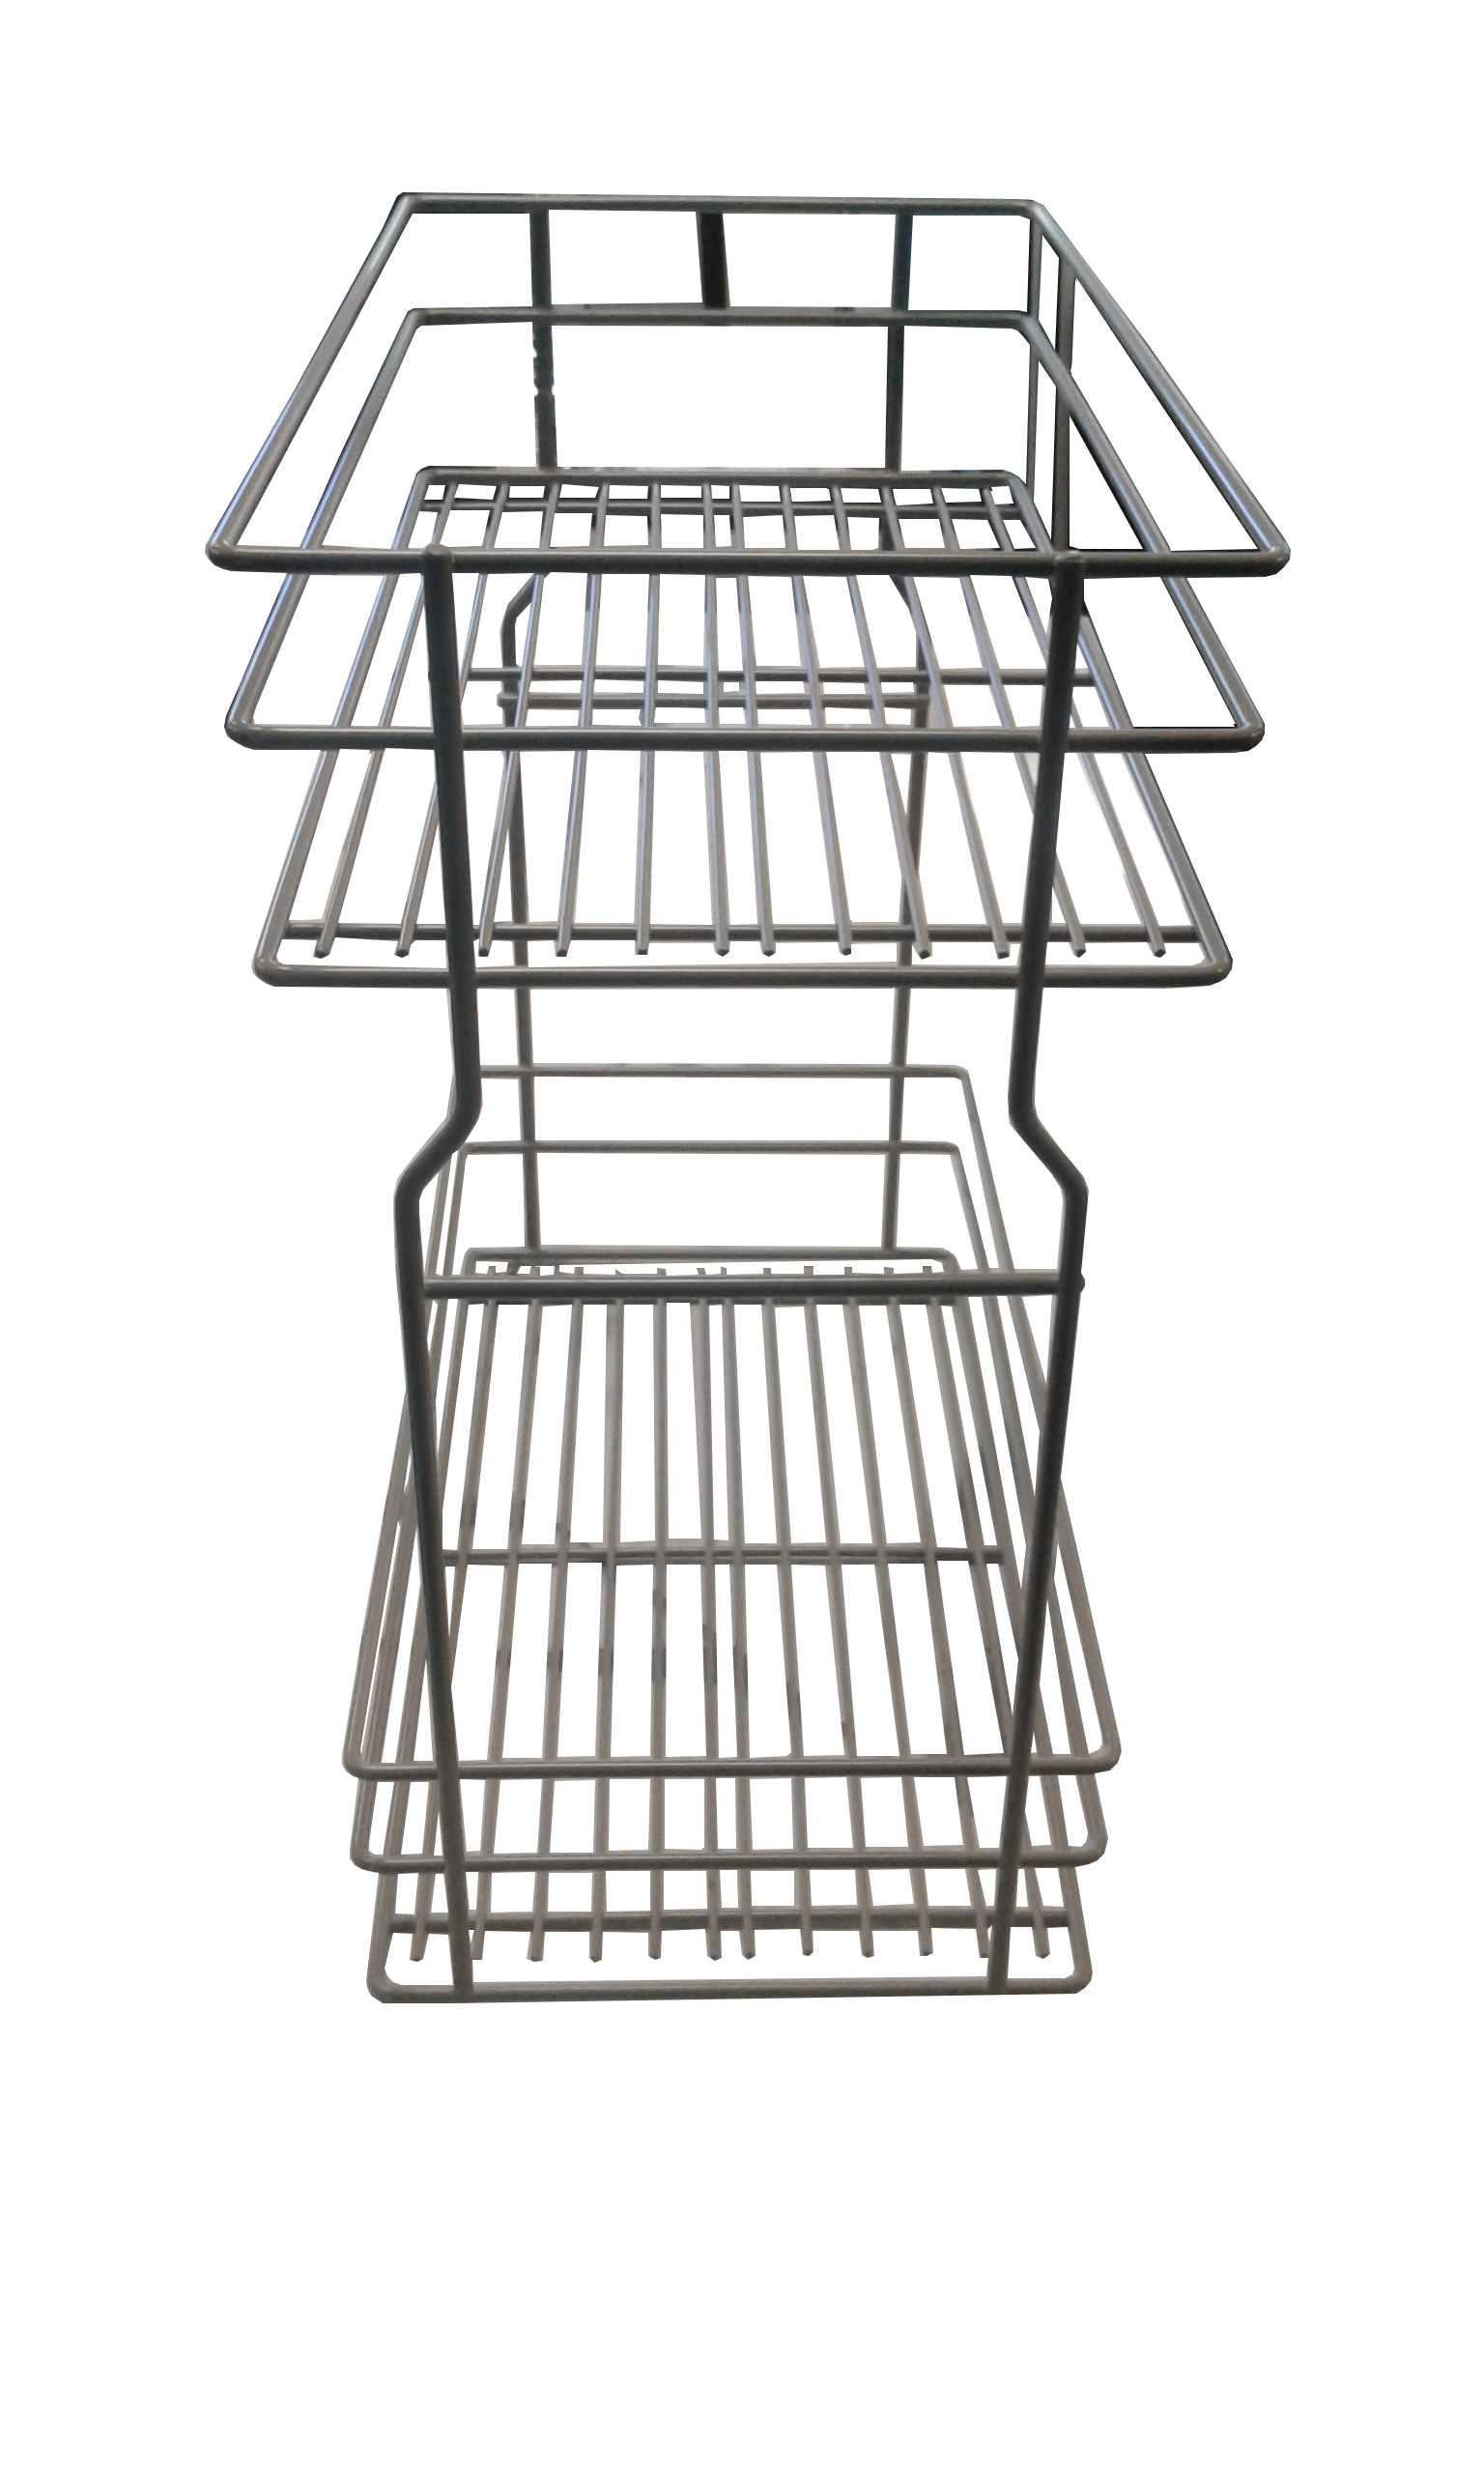 WE29.0005.01.549 Pull-Out Baskets Grey Lacquer Finish